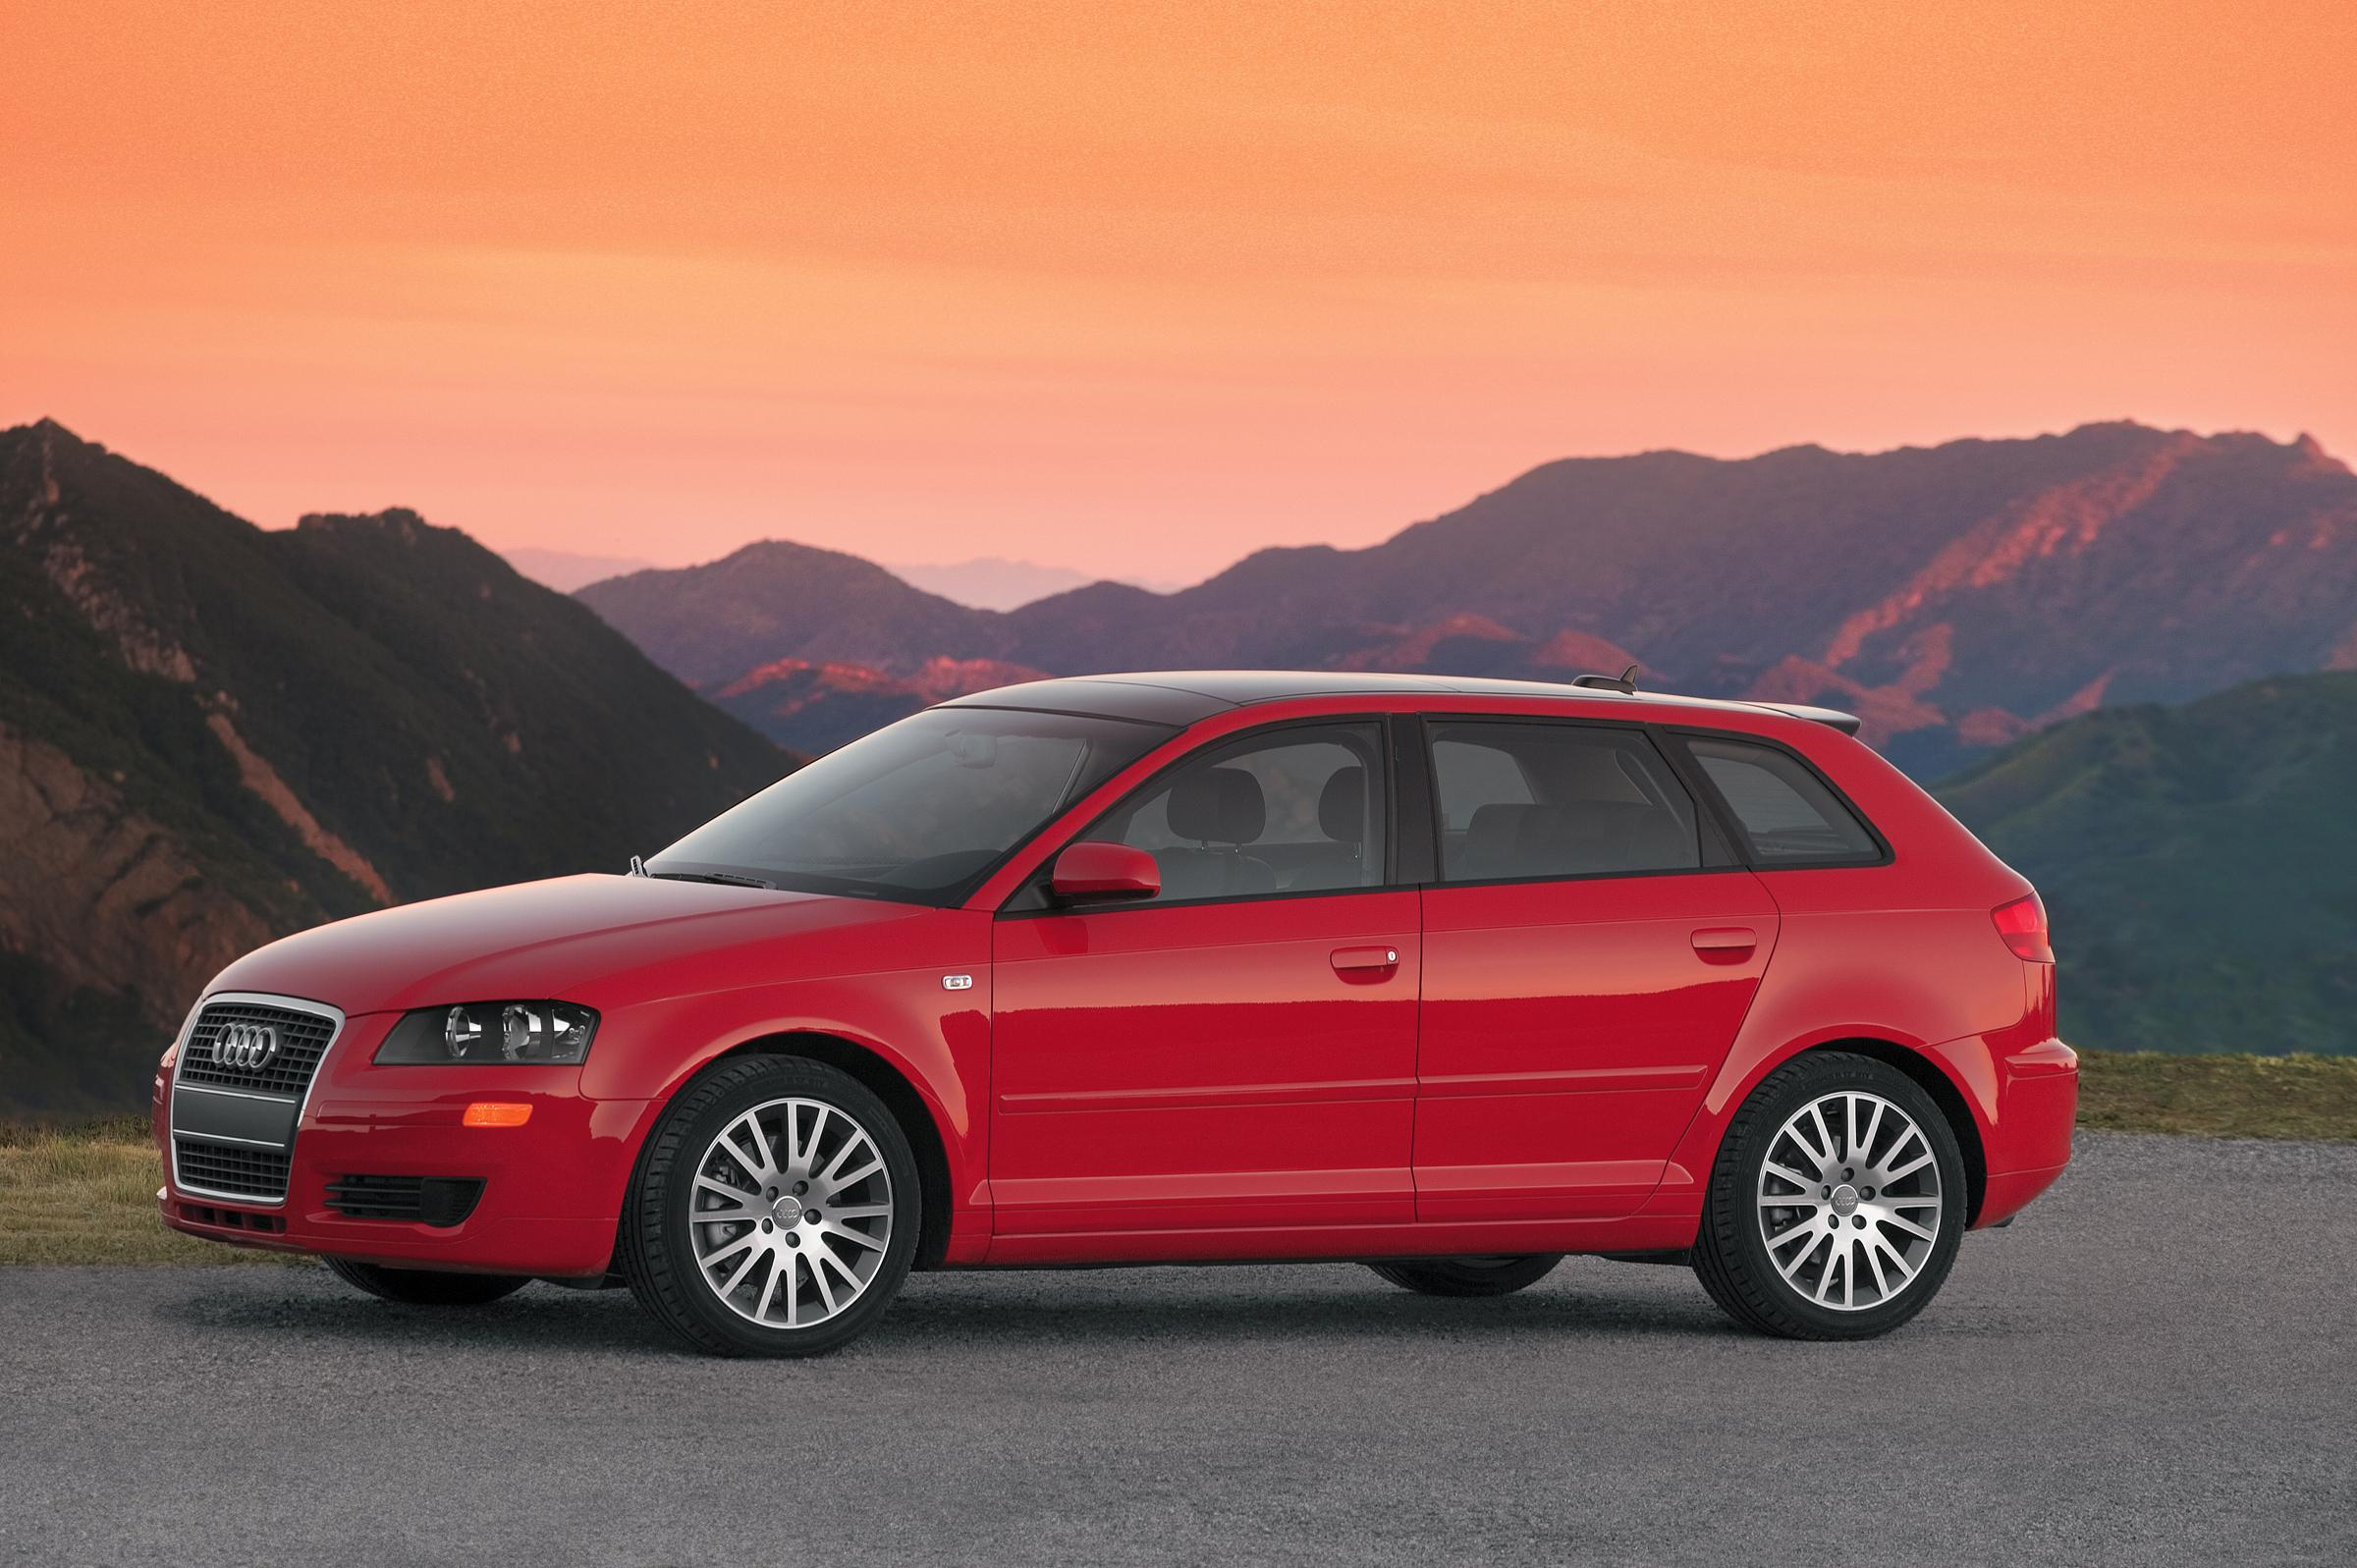 2007 audi a3 gallery 99755 top speed. Black Bedroom Furniture Sets. Home Design Ideas